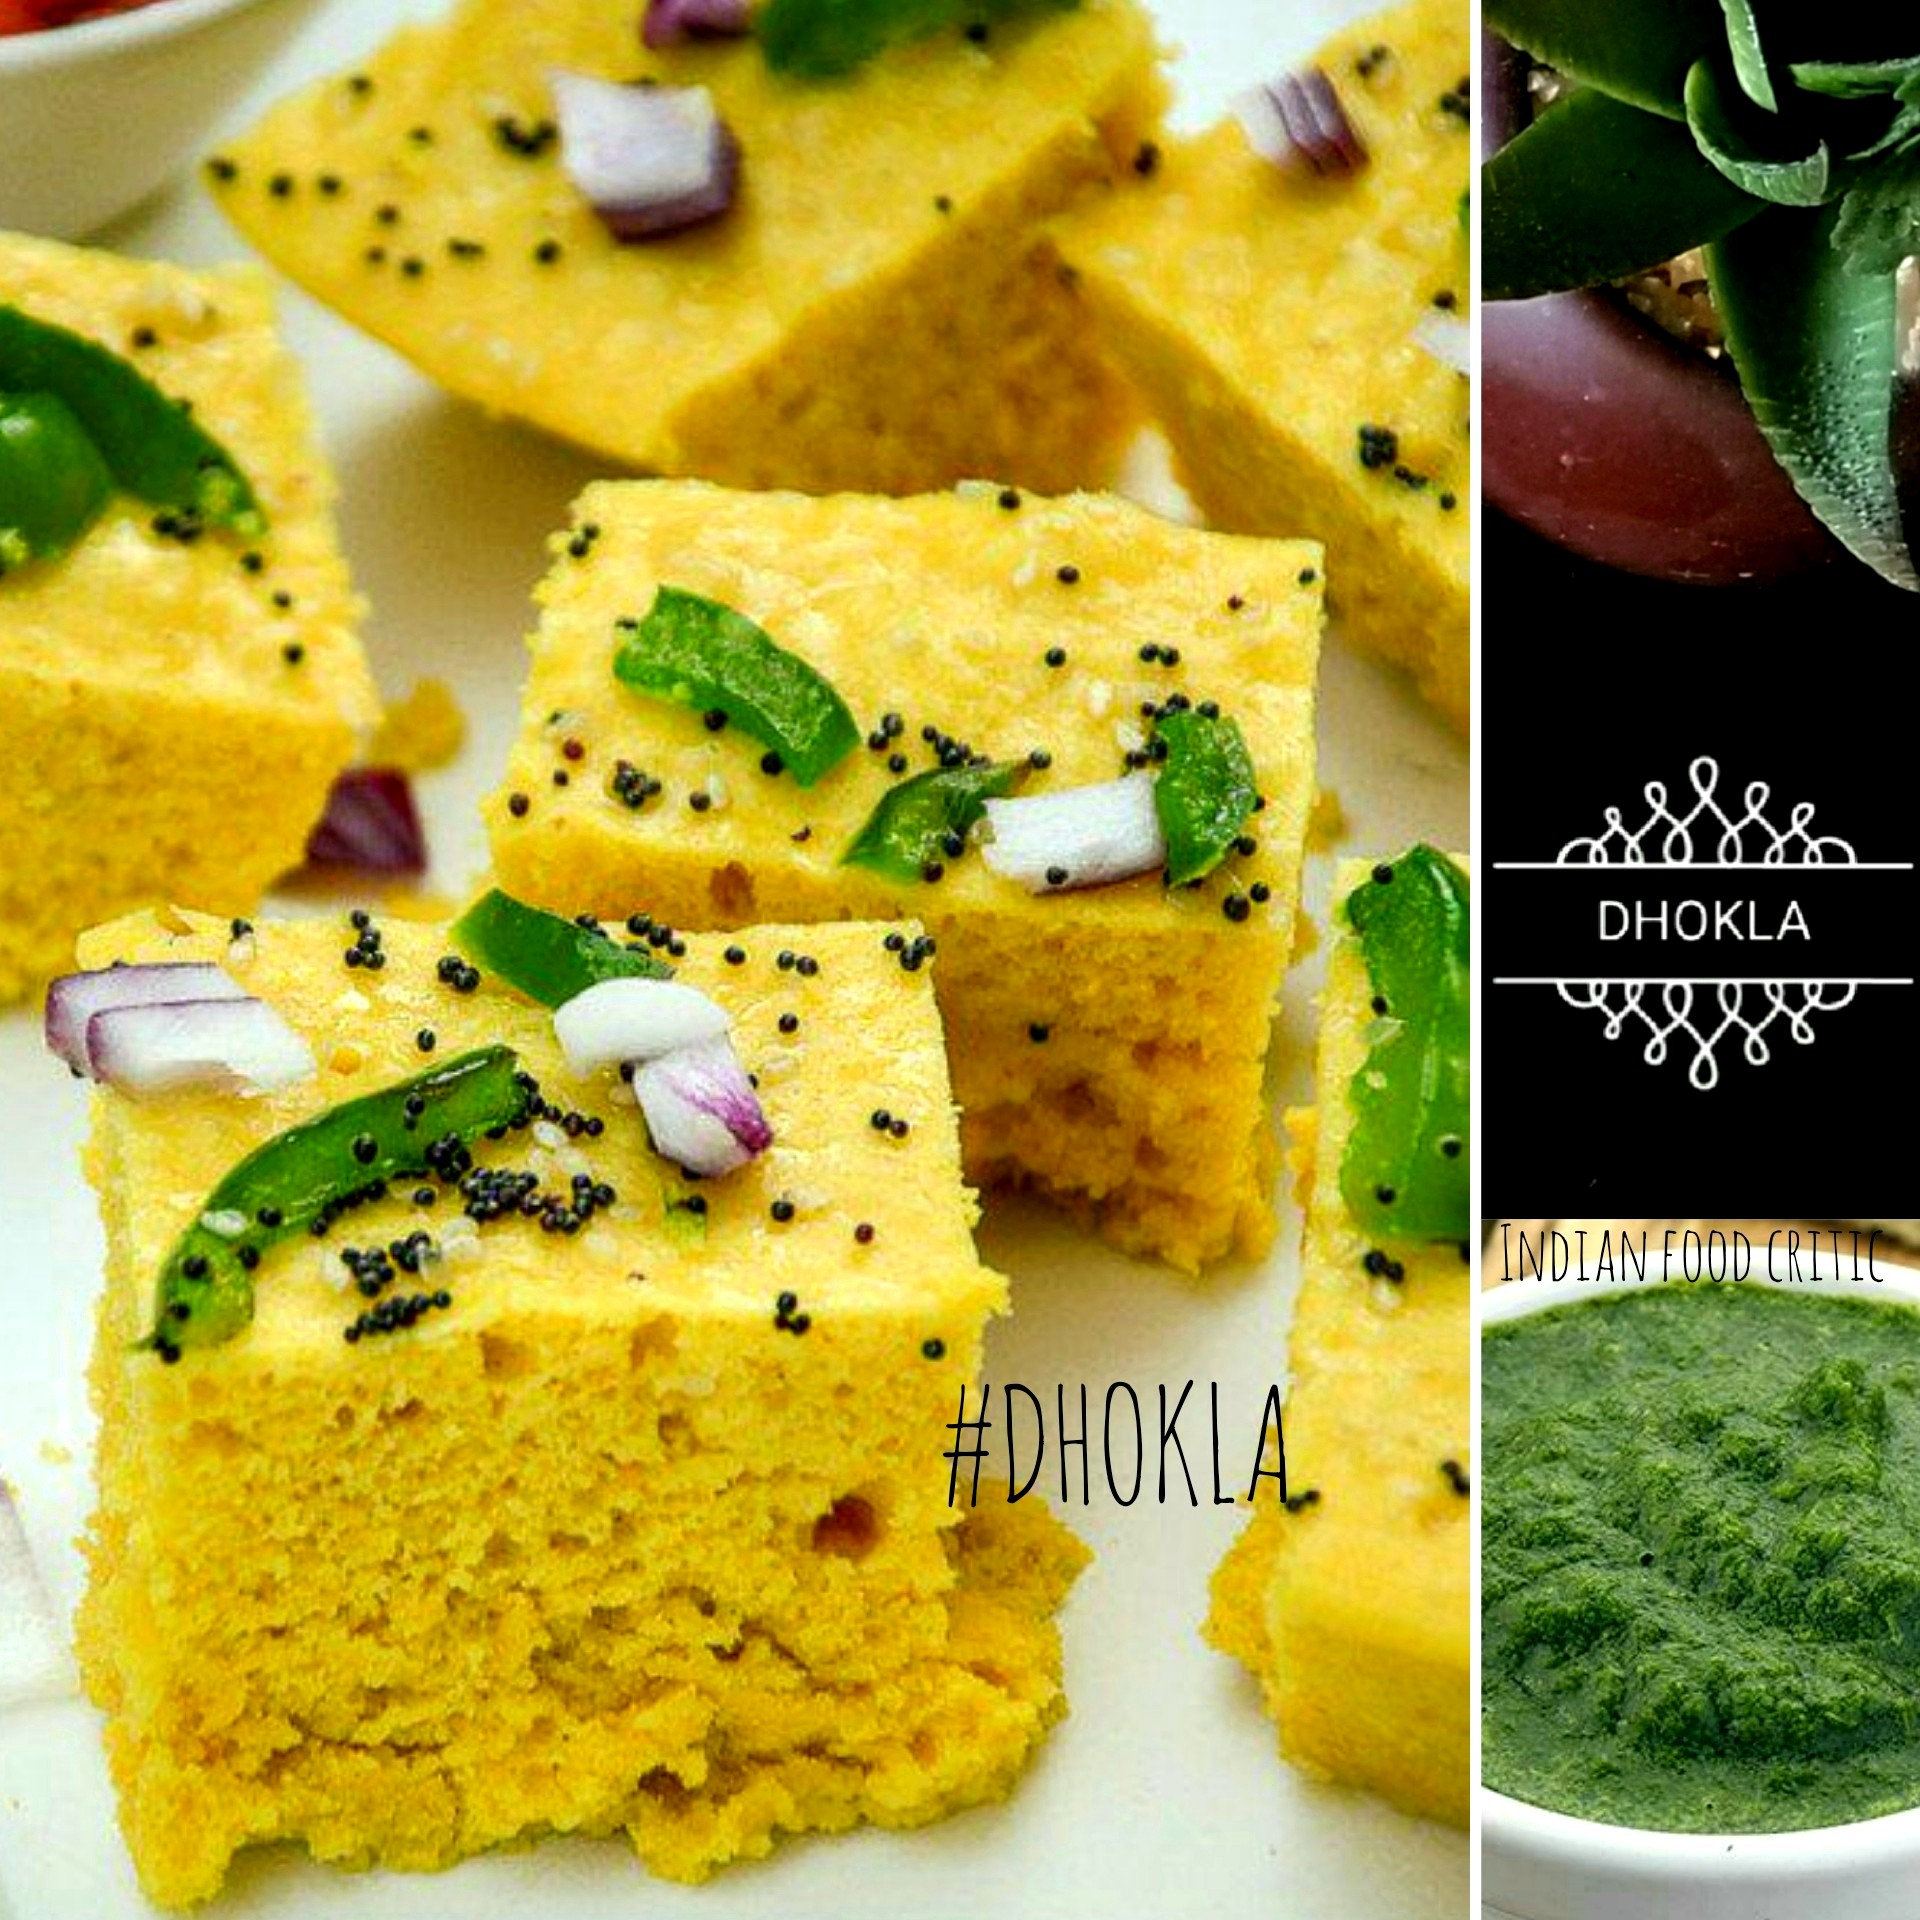 17 dhokla varieties khaman dhokla and many more 47550 17 dhokla varieties khaman dhokla and many more 47550 indian food critic forumfinder Gallery